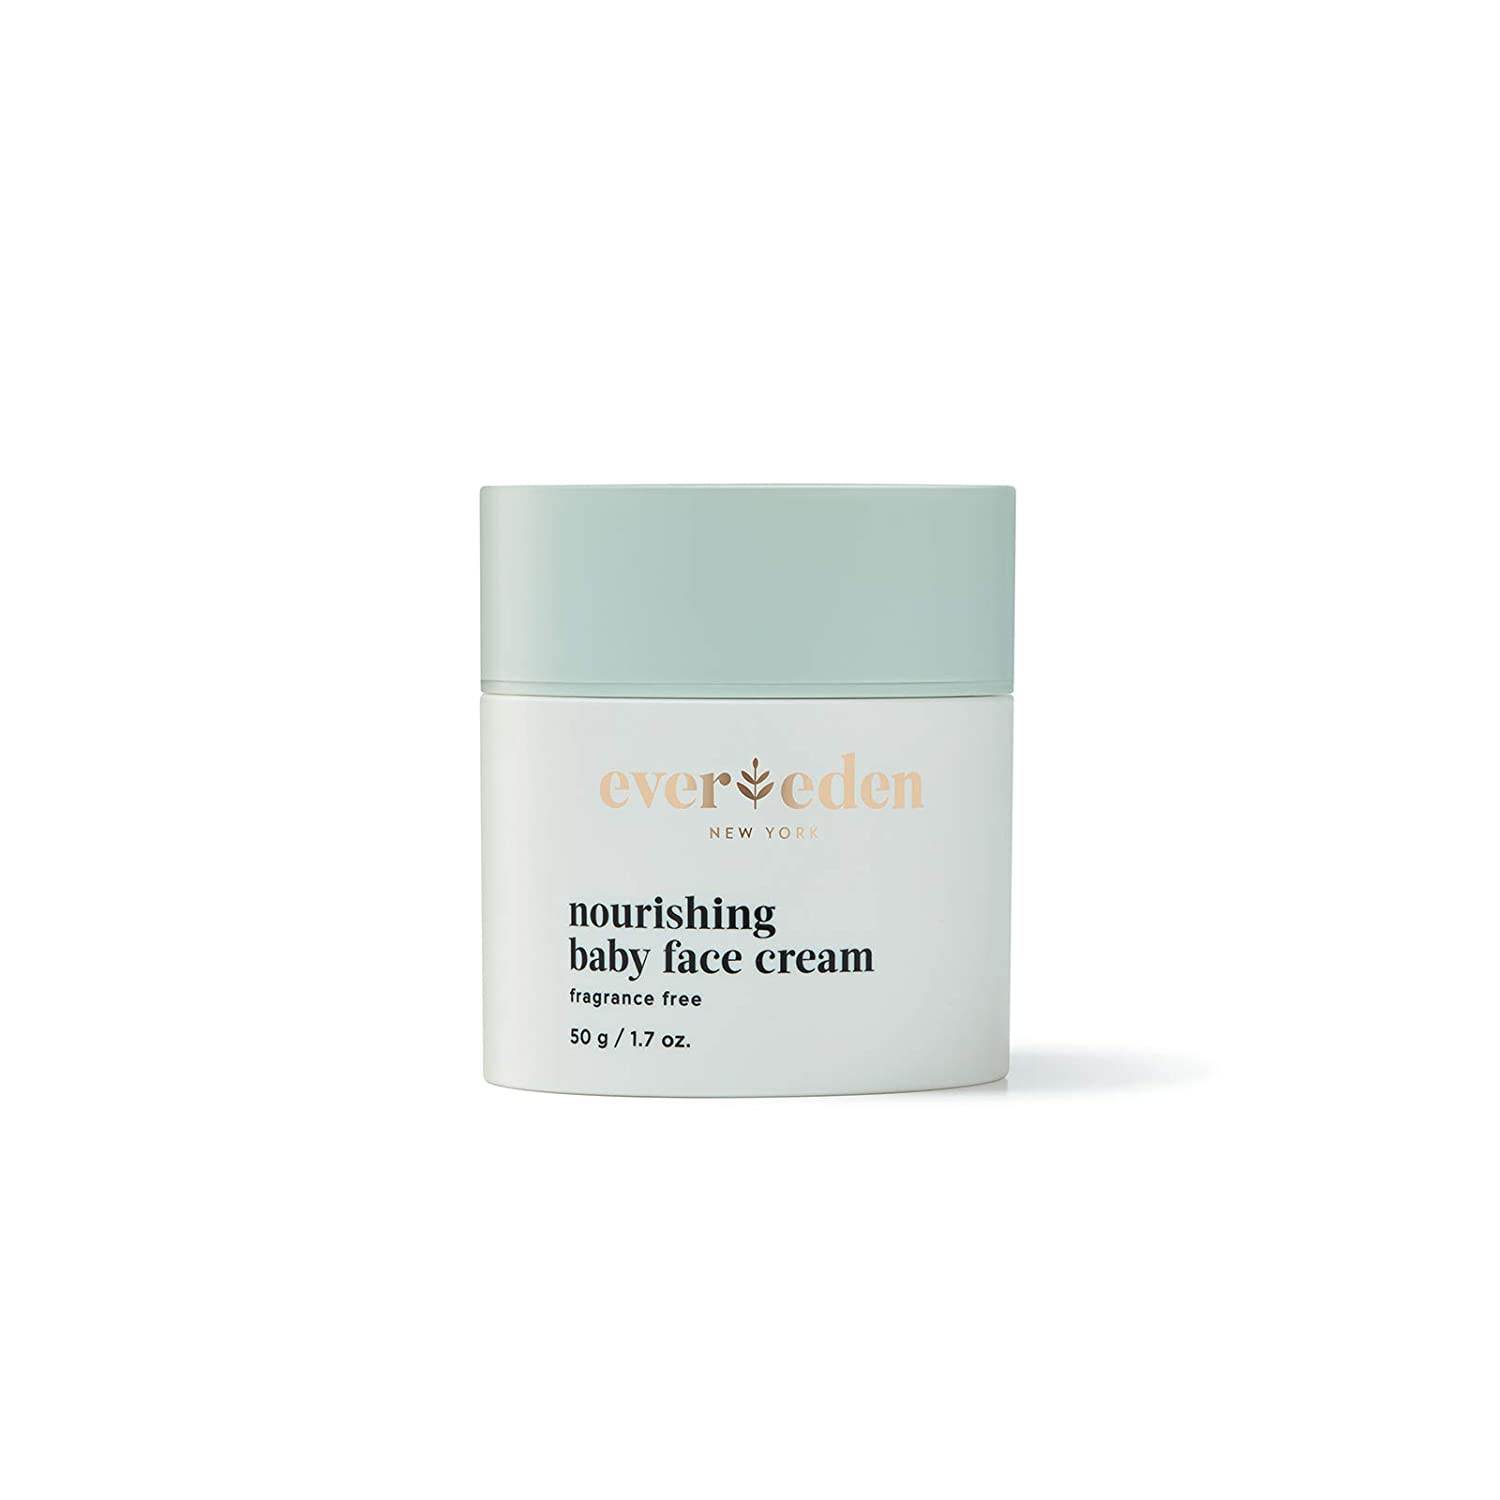 Evereden Nourishing Baby Face Cream, 1.7 oz | Clean and Unscented Baby Care | Natural and Plant Based | Non-toxic and Fragrance Free